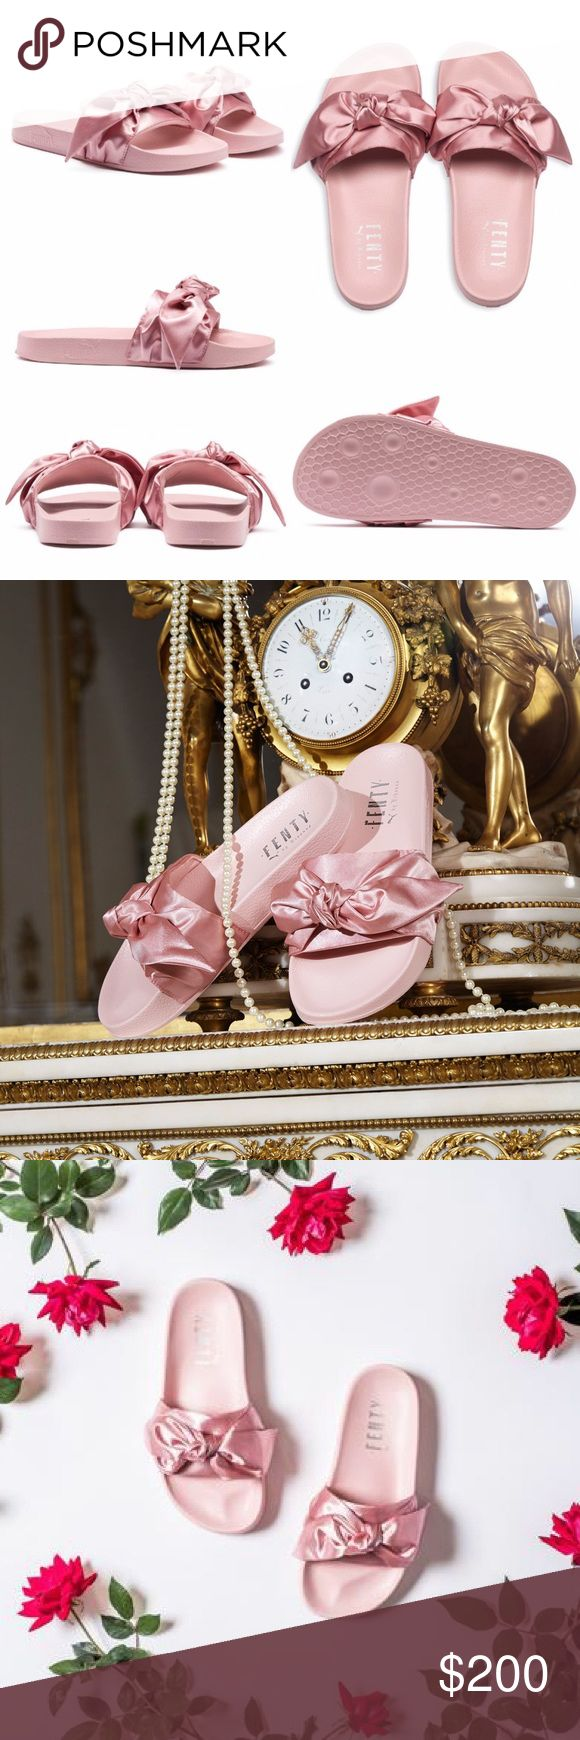 Fenty x PUMA Pink Bow Slides 🎀 Pink satin bow slides from Rihanna's S/S 2017 collection available in multiple sizes. Soft foam backed strap and contoured footbed for comfort. Runs large, size down! All new in box - will ship double boxed for protection. Offers welcome through button only❣❣ I take pictures, record and weigh all packages before shipping. No trades. All sizes on hand - shipping next day! Sizes subject to availability. Size on sole is UK sizing. Please ask any and all questions…